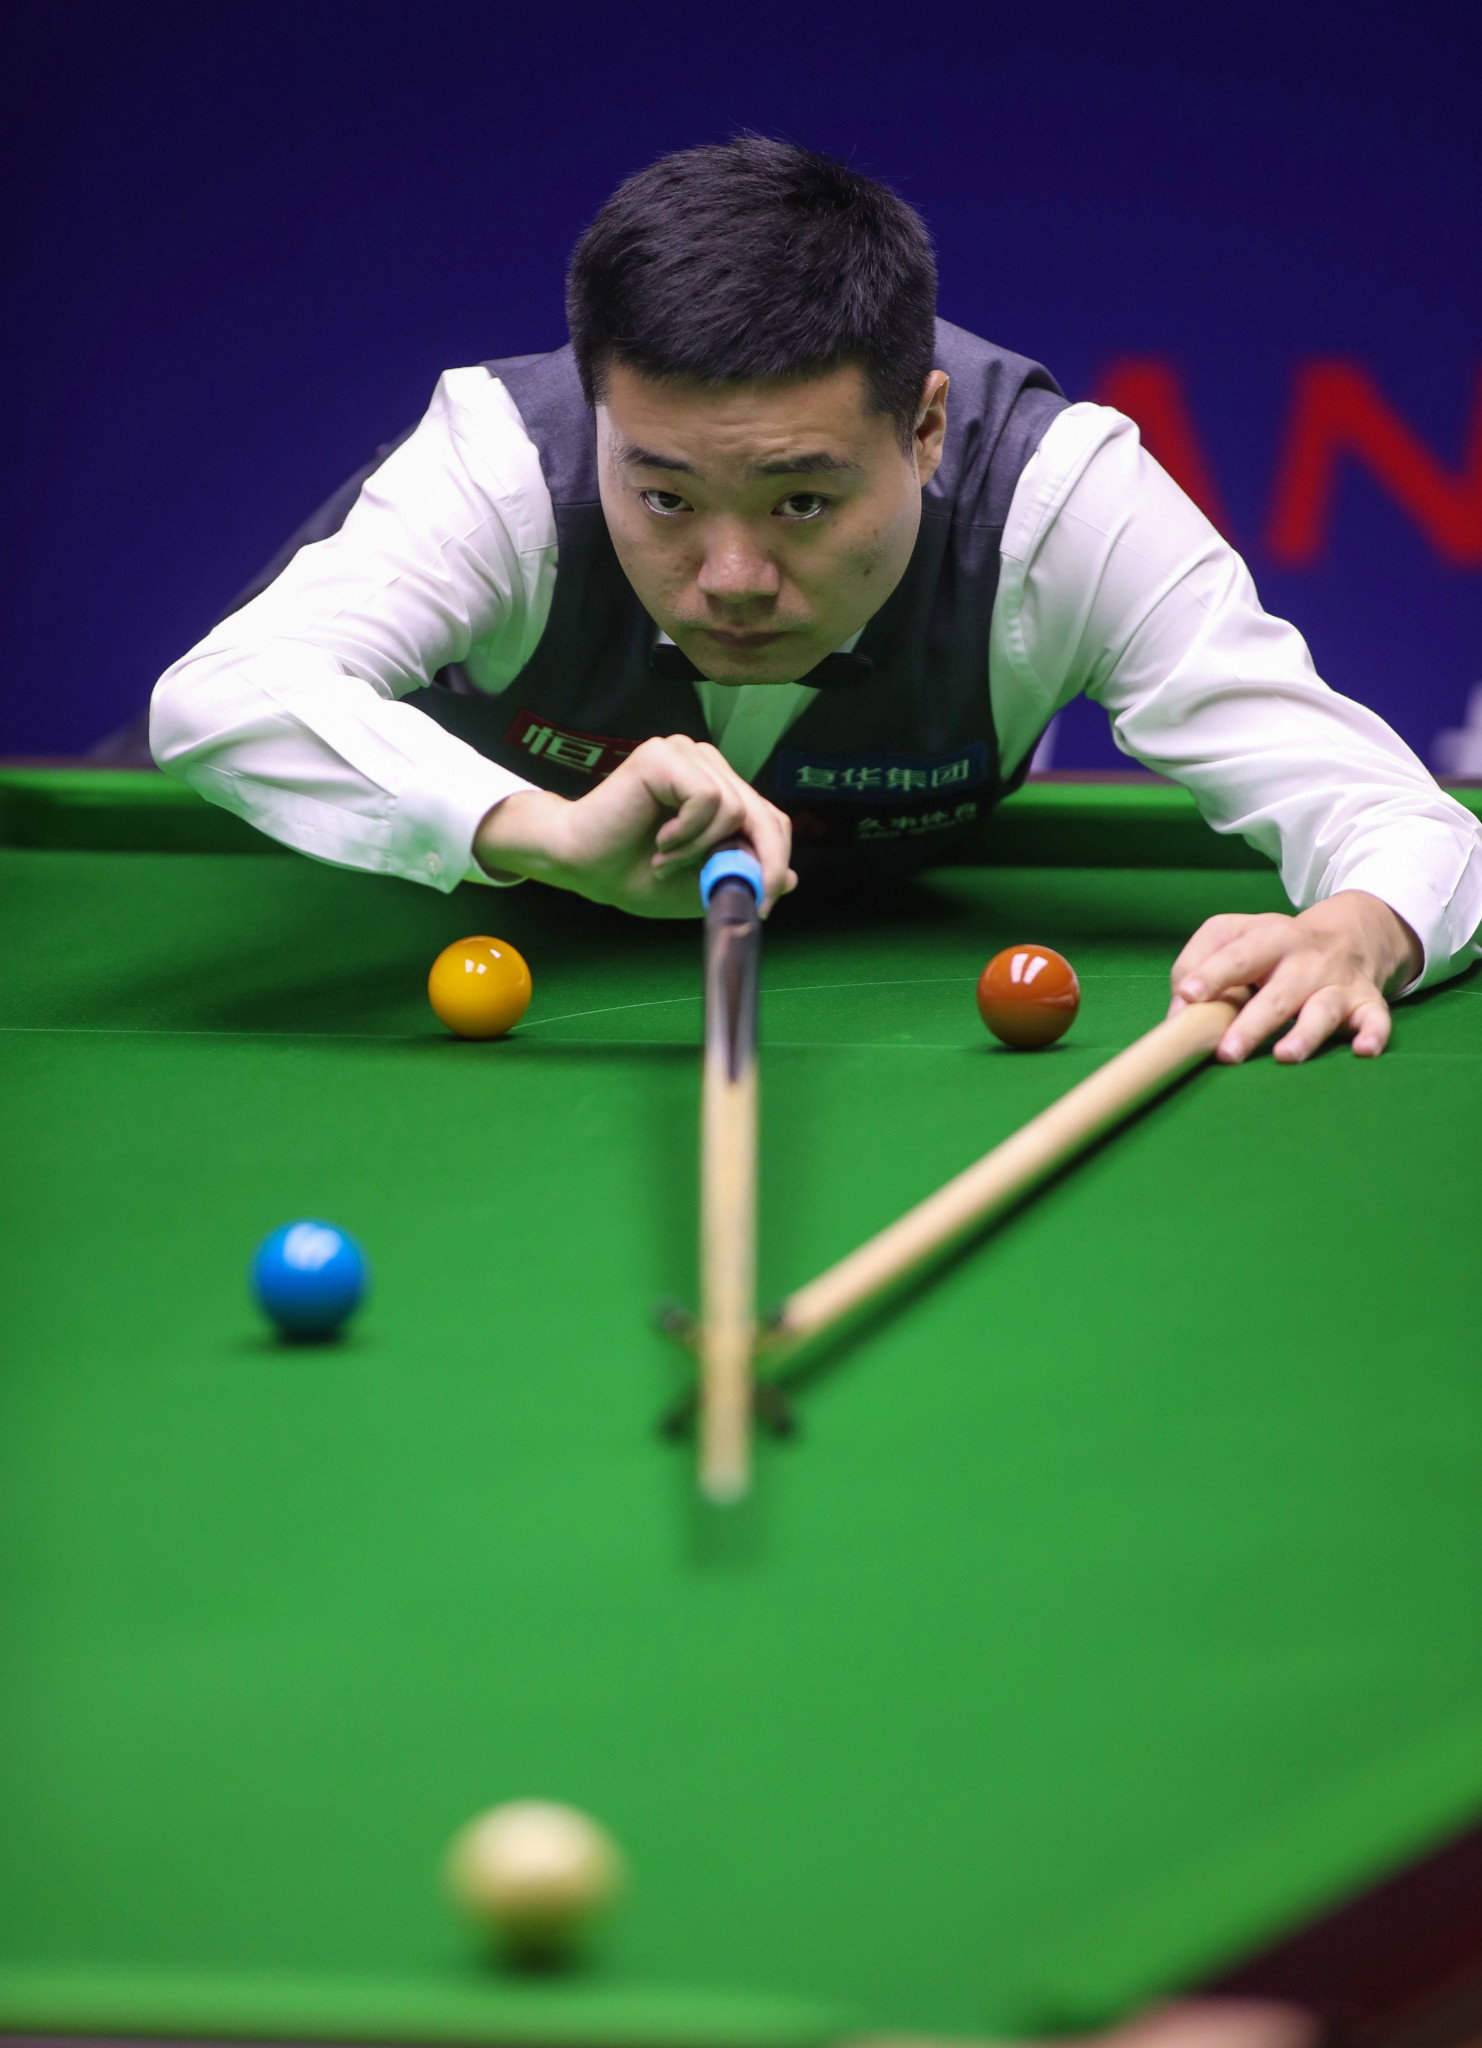 Ding storms back to take initiative against Trump at World Snooker Championship